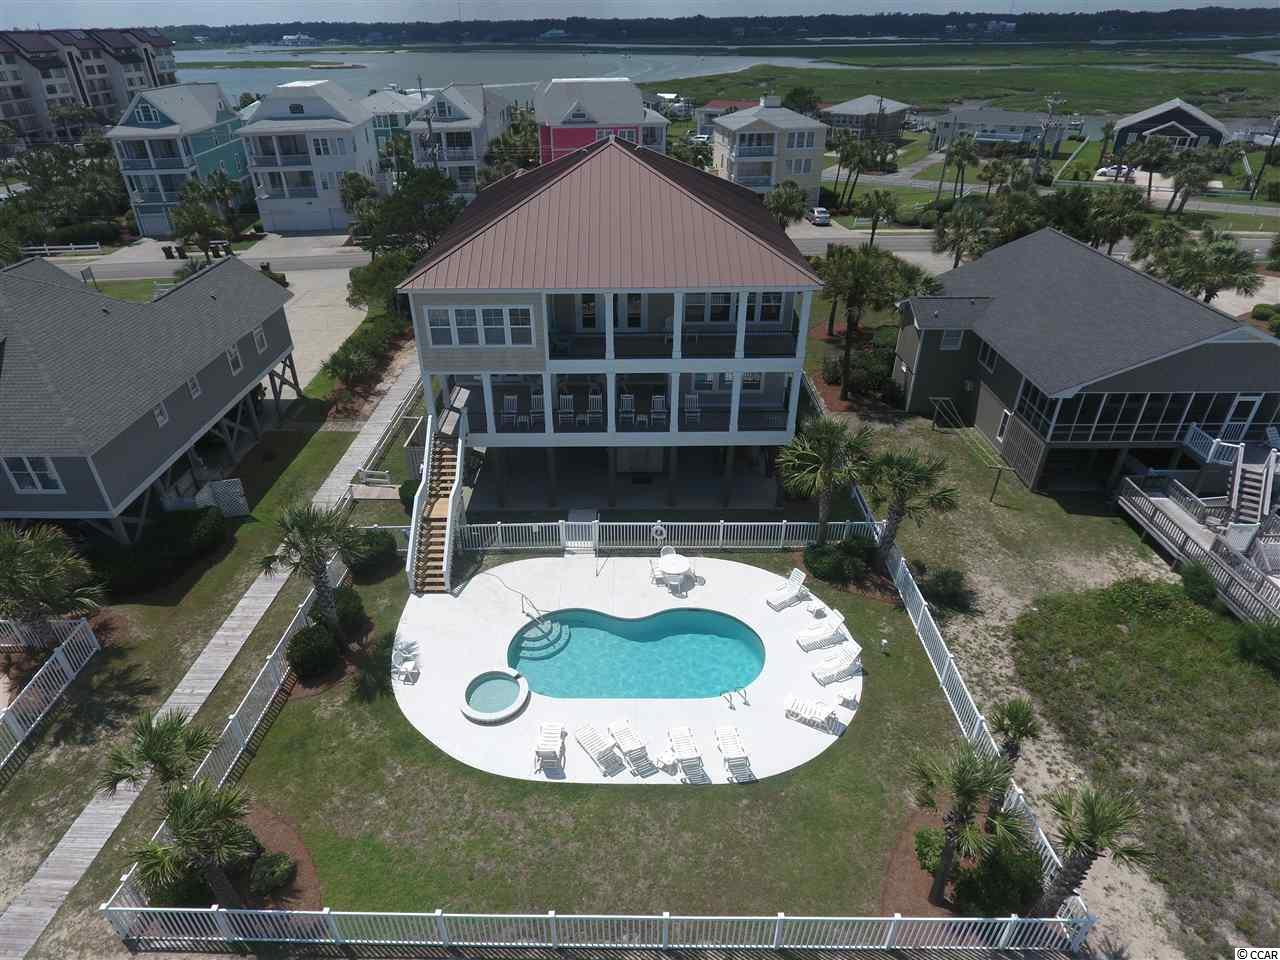 "Looking to channel your inner ""Sea Spirit?""  Look no further as this beautiful beach home consists of 8-bedrooms and 8.5 bathrooms.  It sits on one of the deepest and most protected (by sand dunes) 75' wide lots in Garden City Beach.  It has hardwood floors in the living areas and granite counter tops & stainless steel appliances in the kitchen.  Amenities such as a private heated pool, hot tub, double oceanfront porches, two very large living areas (upstairs living area has a pool table and kitchenette) all make it a very good rental property.  You are just a short walk from the ship store and fishing charters at Marlin Quay Marina and wonderful meals at Gulf Stream Cafe.  Contact the listing agent, or your Realtor, for more details or to set up a private showing."